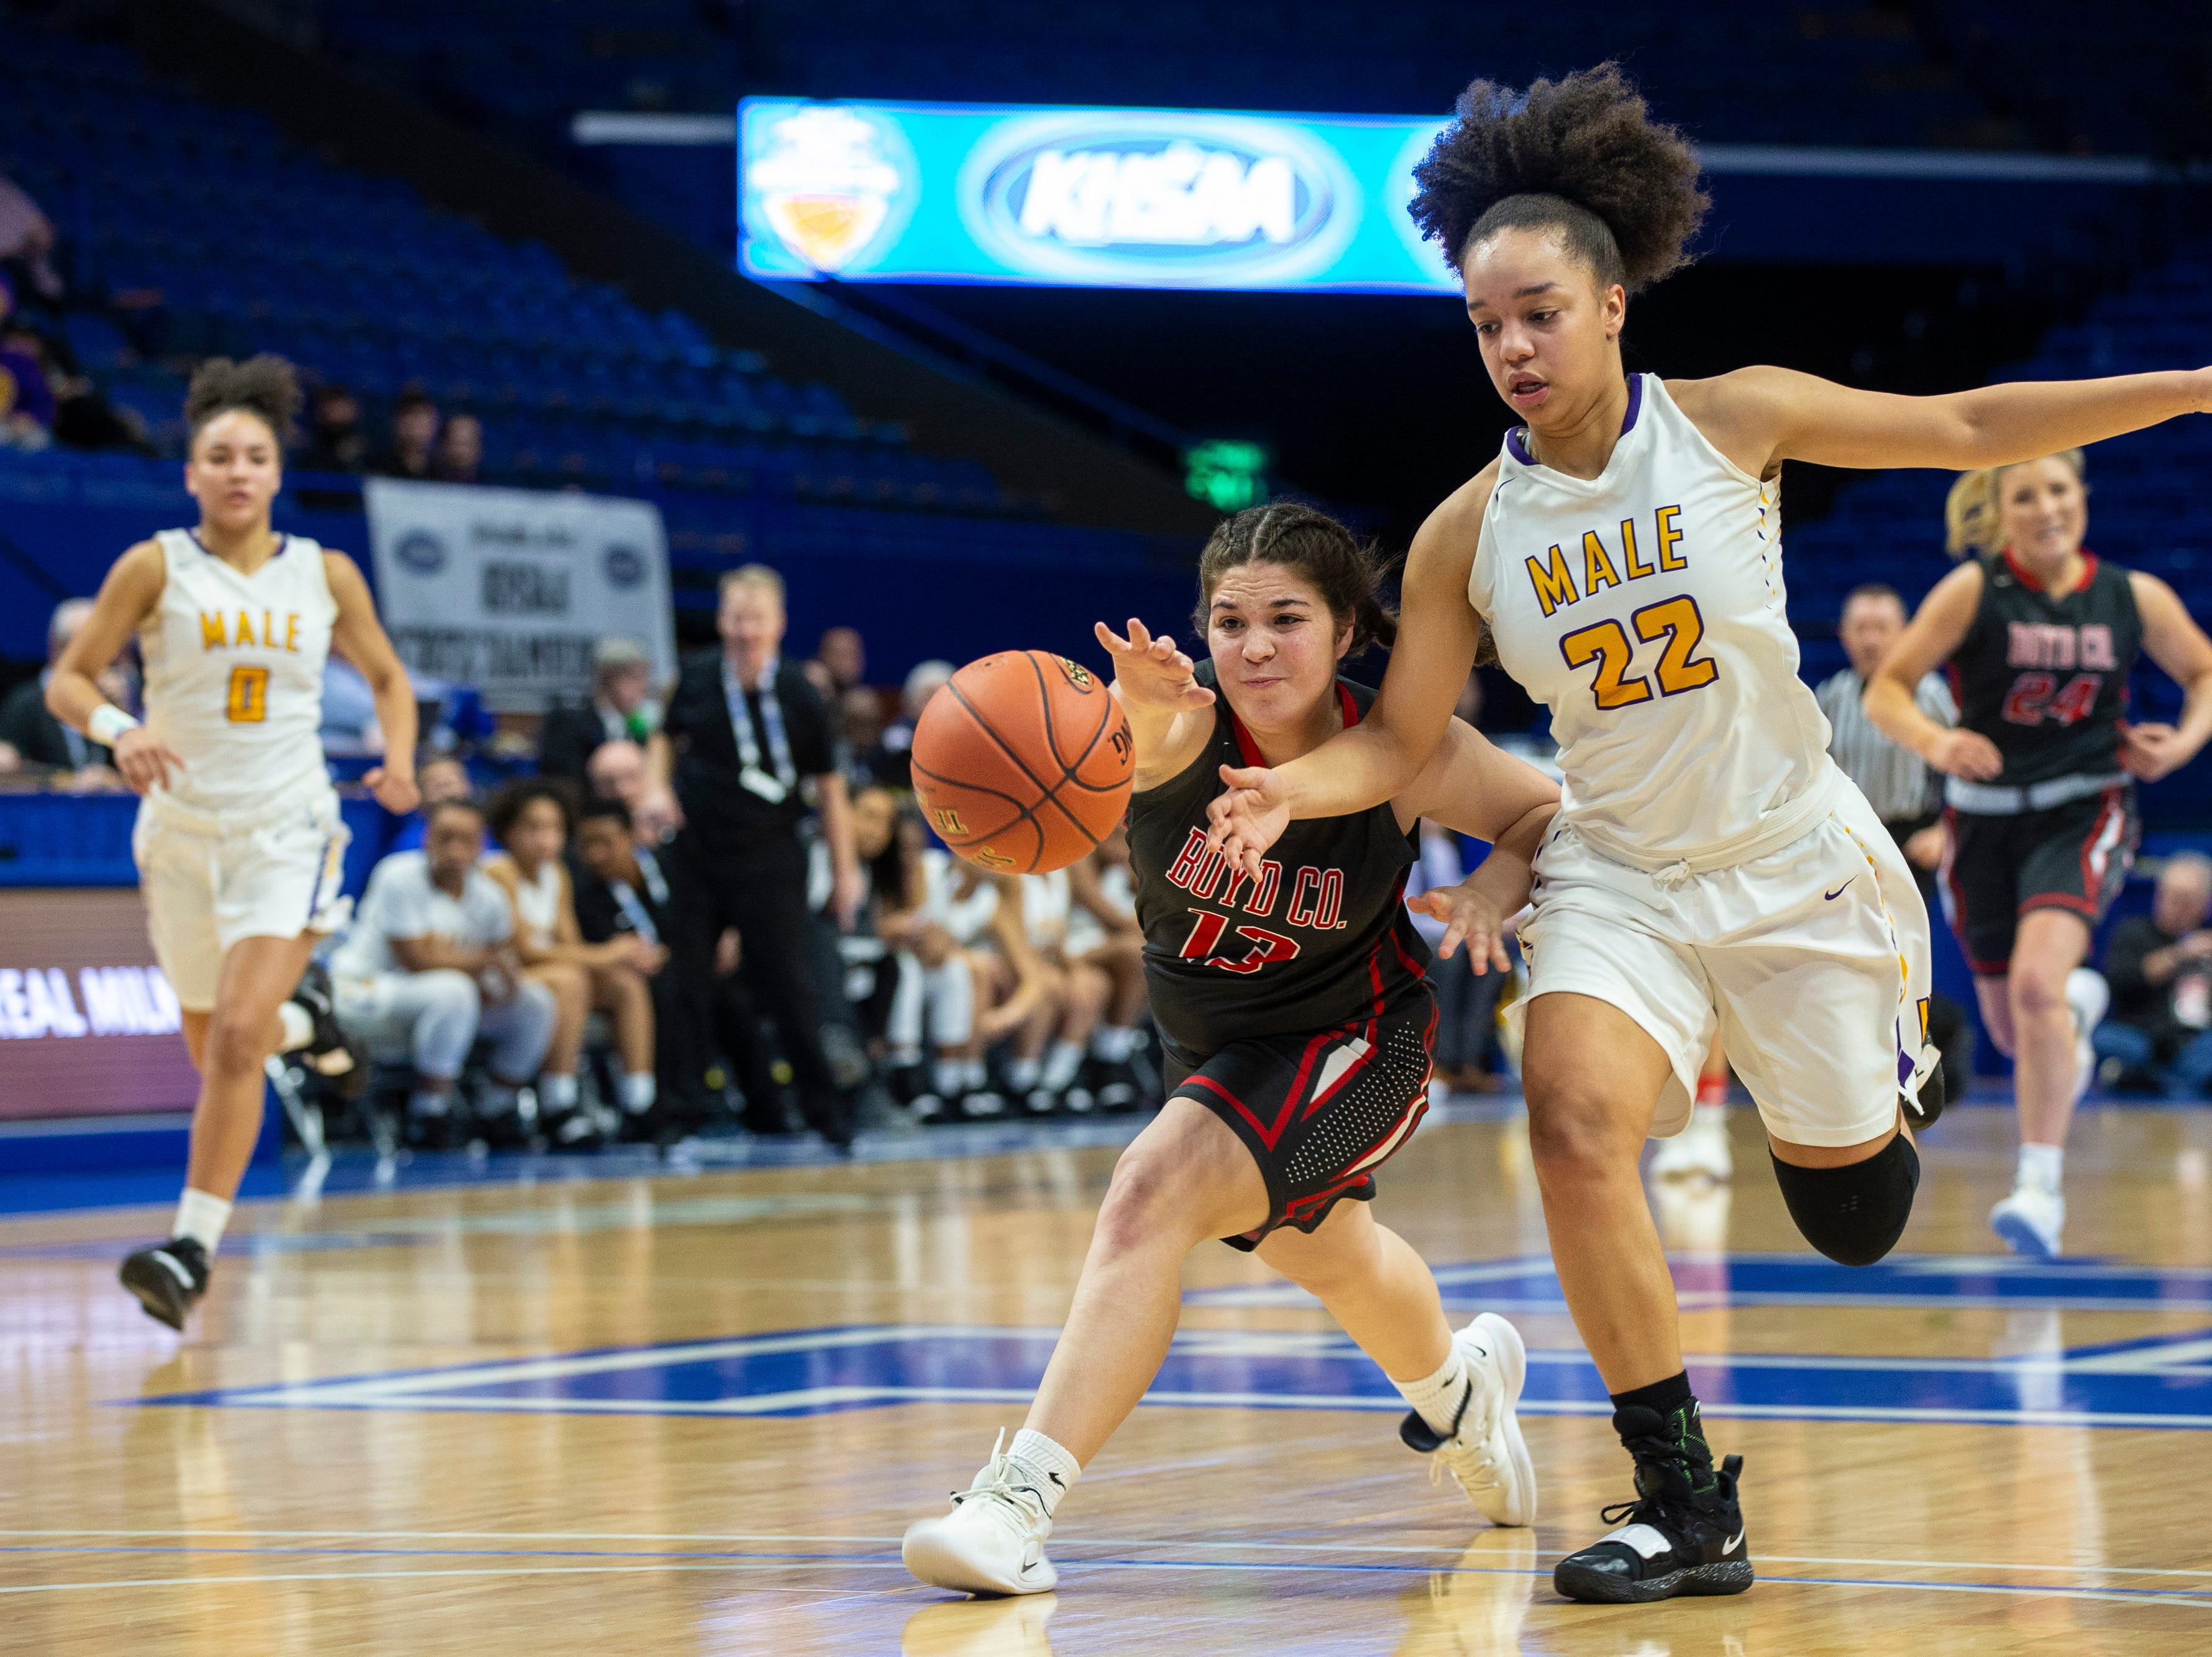 Boyd County's Graci Opell, left, fights for a loose ball with Male's Alana Striverson as Boyd County took on Louisville Male in the KHSAA state basketball tournament in Rupp Arena. Male eliminated Boyd County 74-56. March 14, 2019